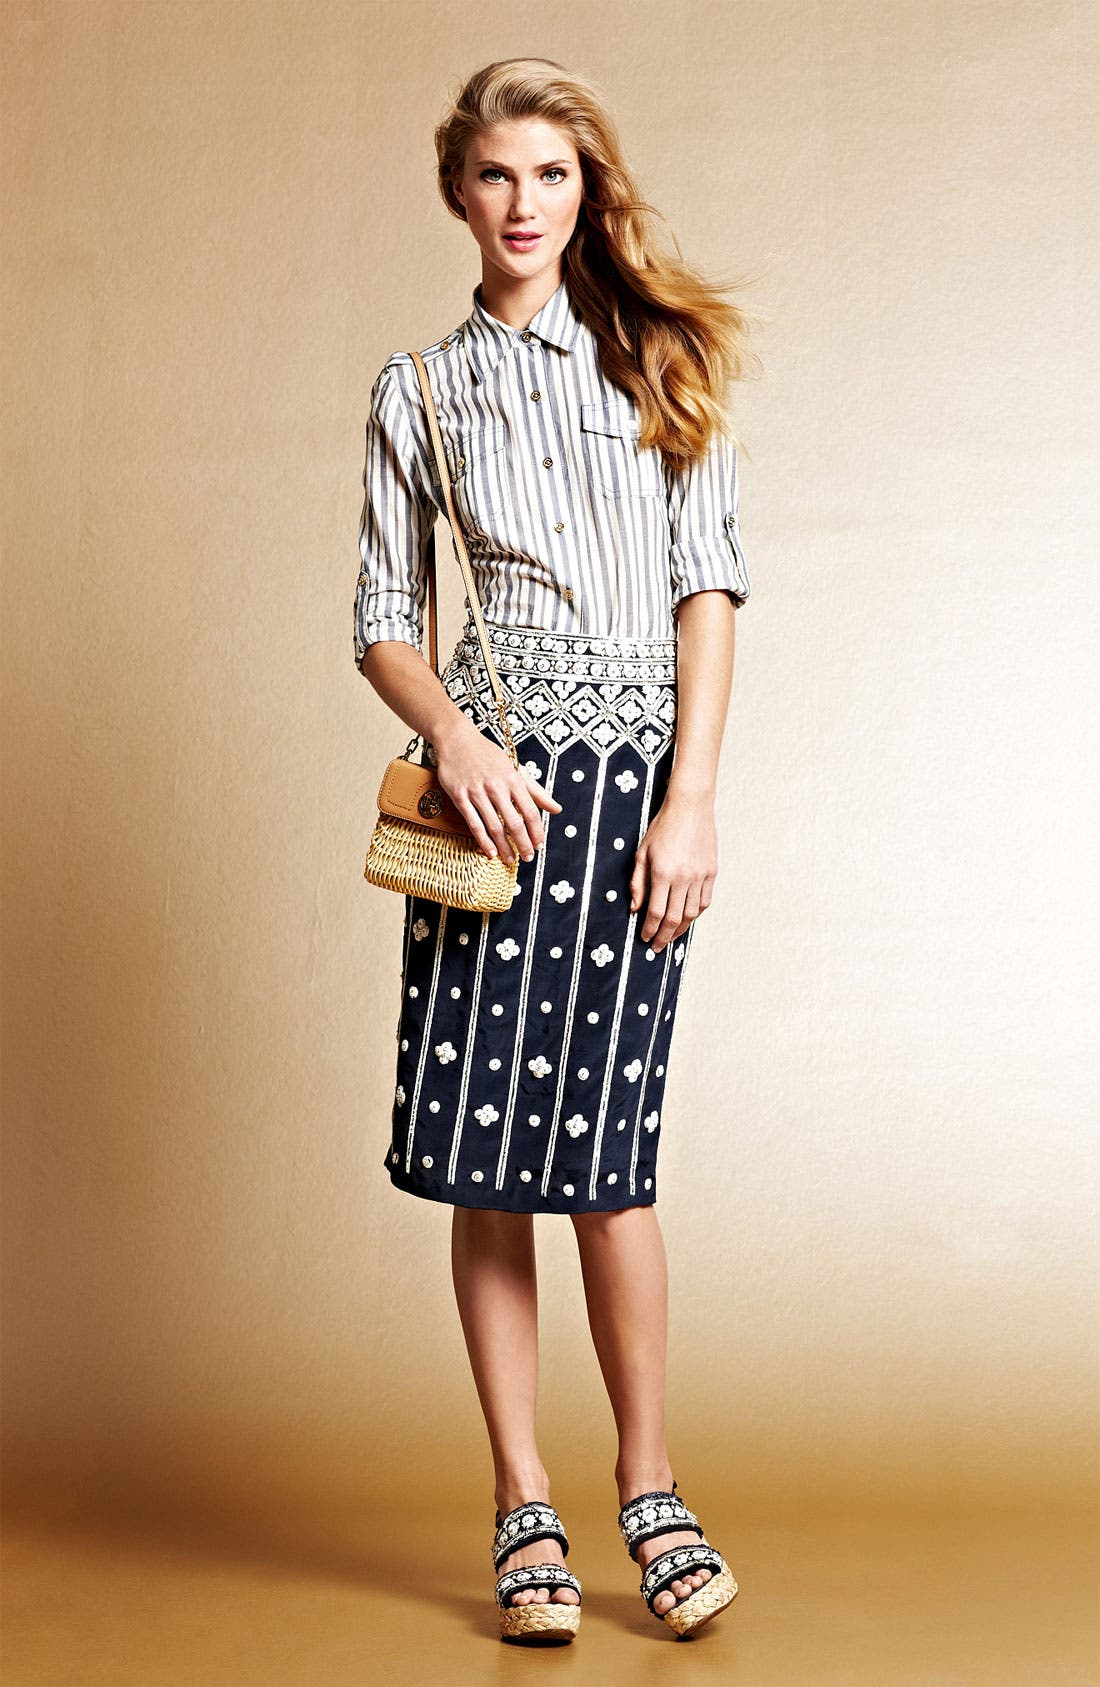 Main Image - Tory Burch Shirt & Sequin Skirt